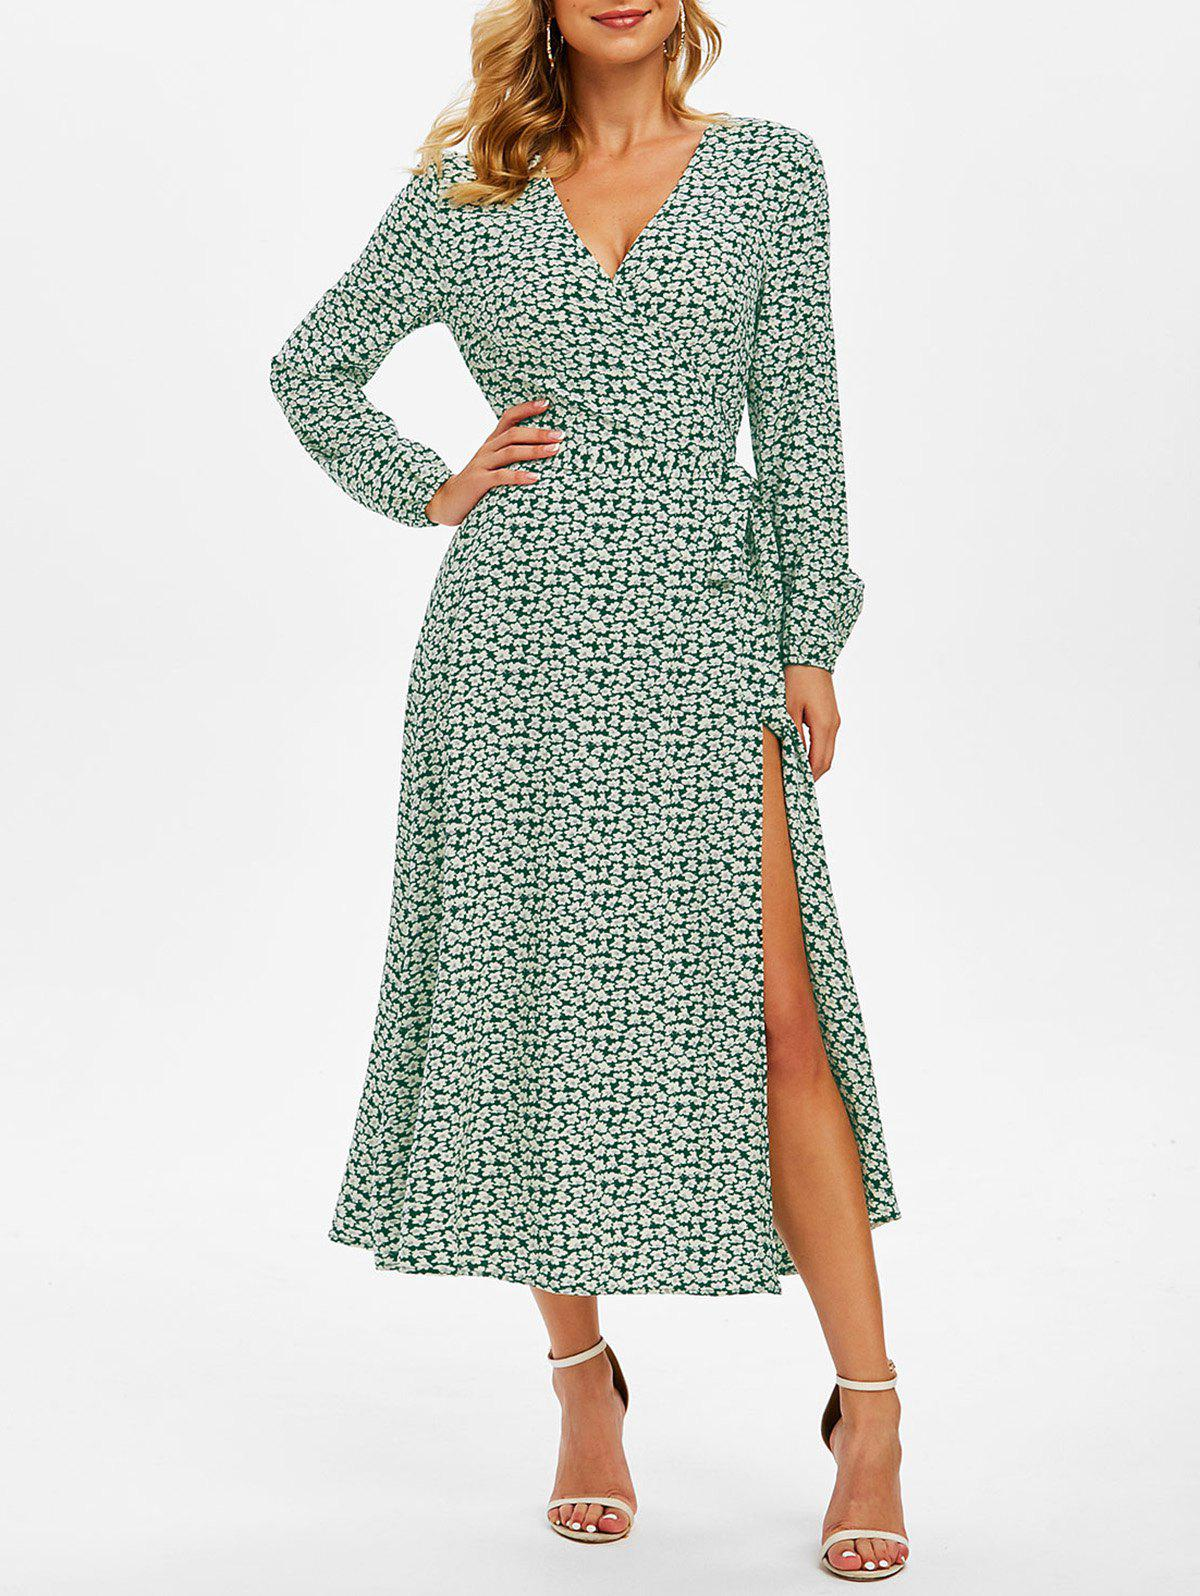 Floral Print Belted Surplice Dress - MEDIUM SEA GREEN 3XL